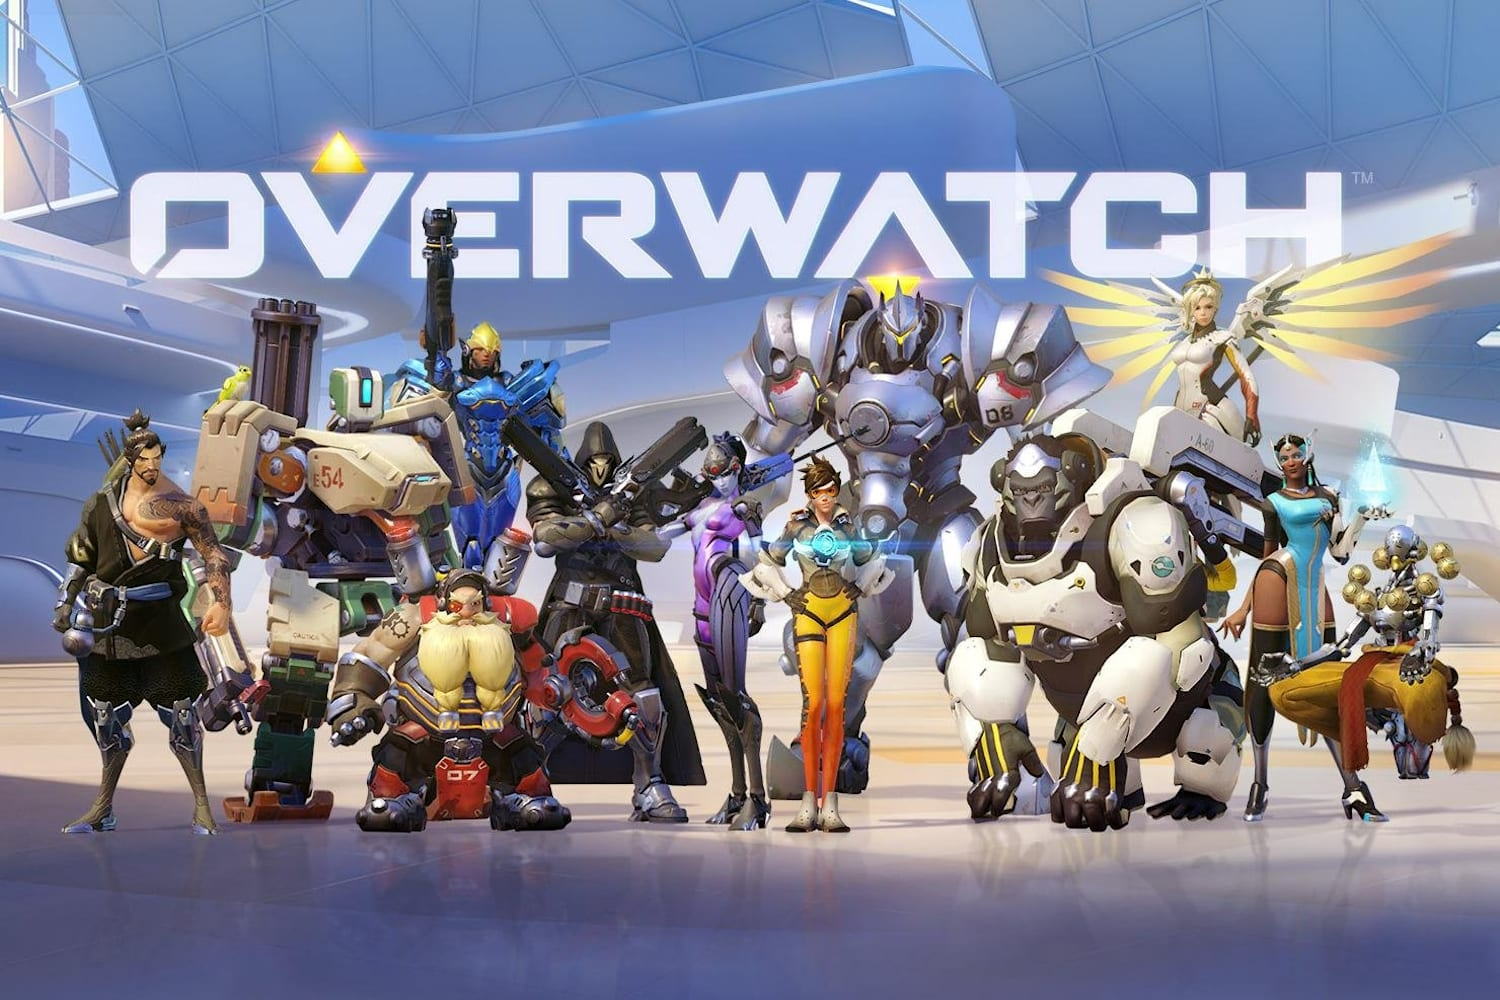 Overwatch the game